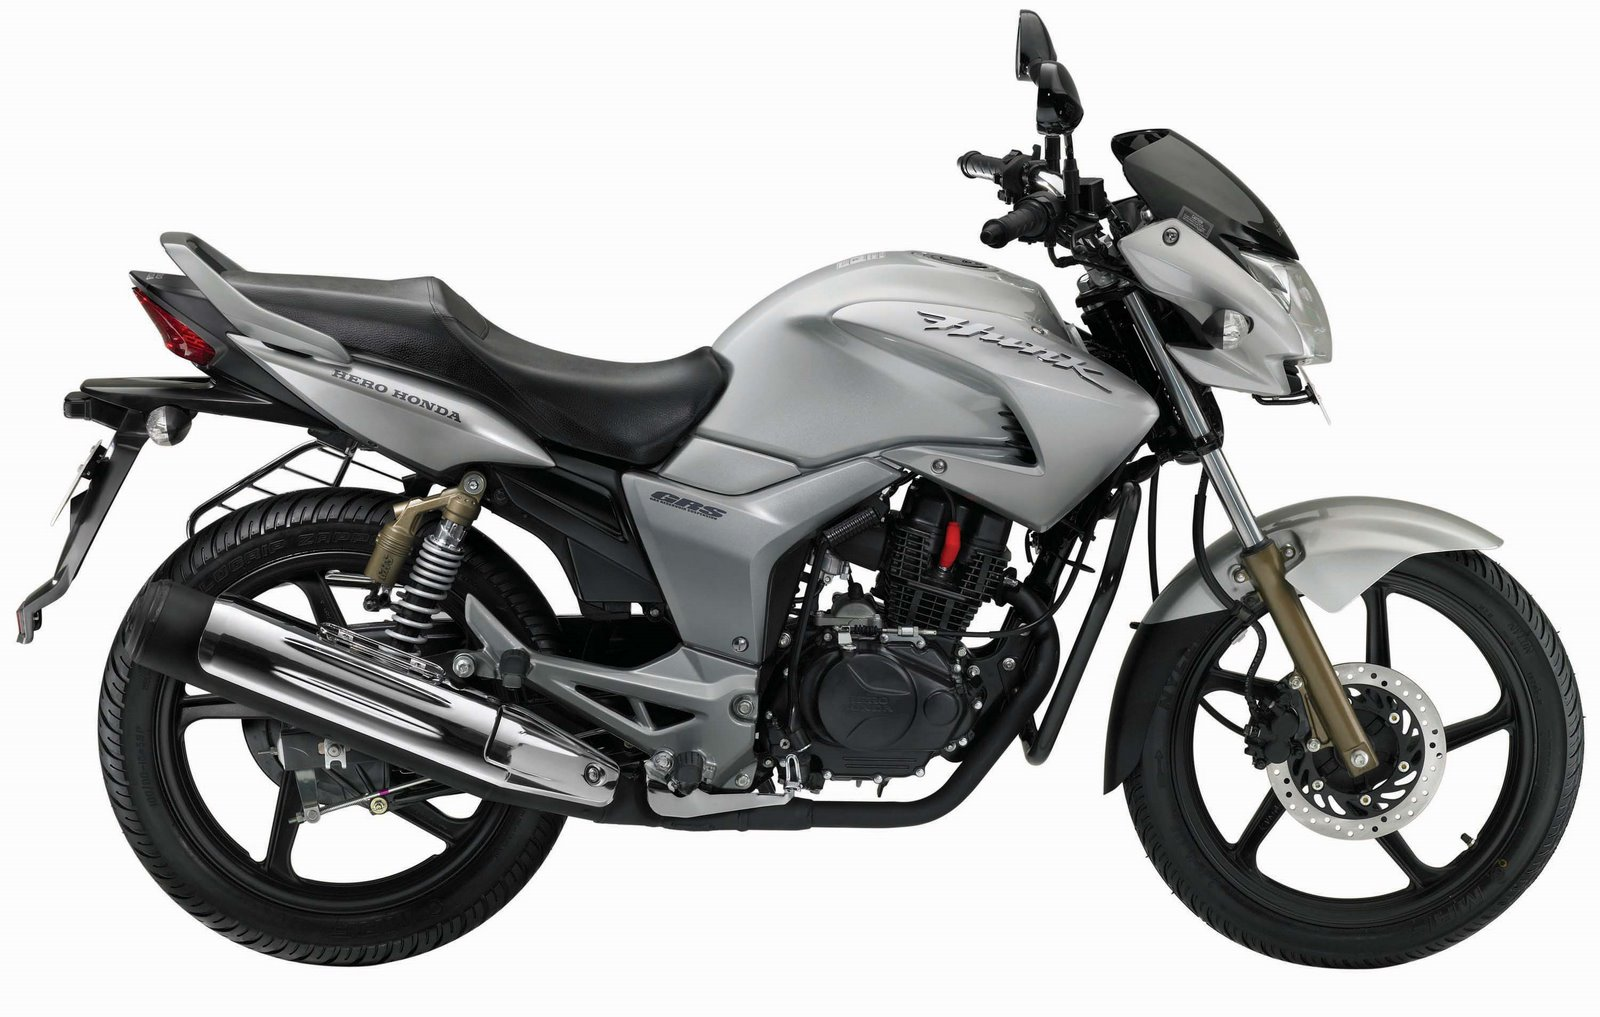 Hero Honda Bikes Prices Bike N Bikes All About Bikes